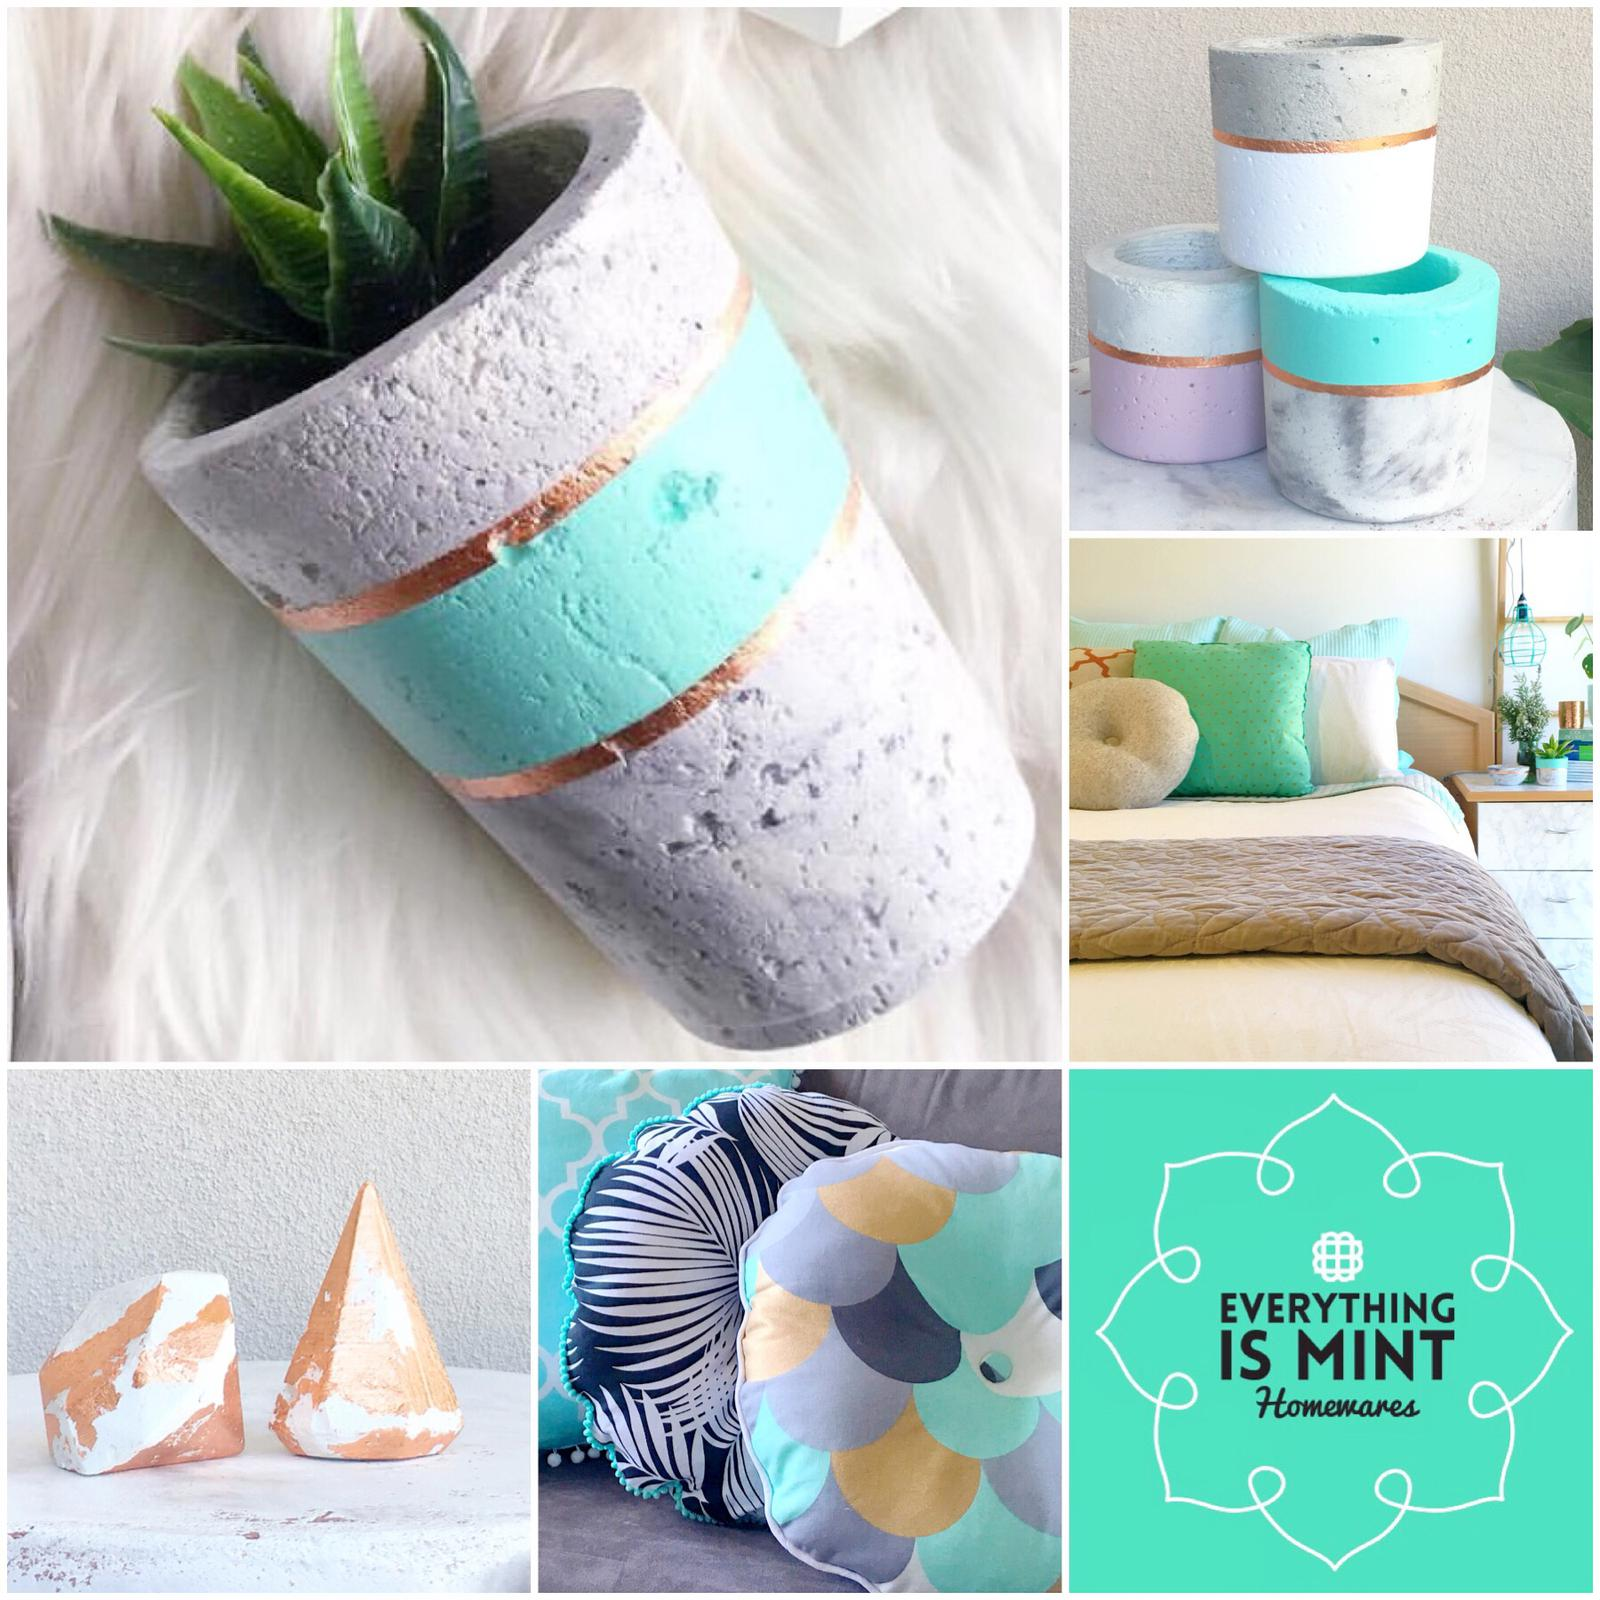 Everything Is Mint Homewares